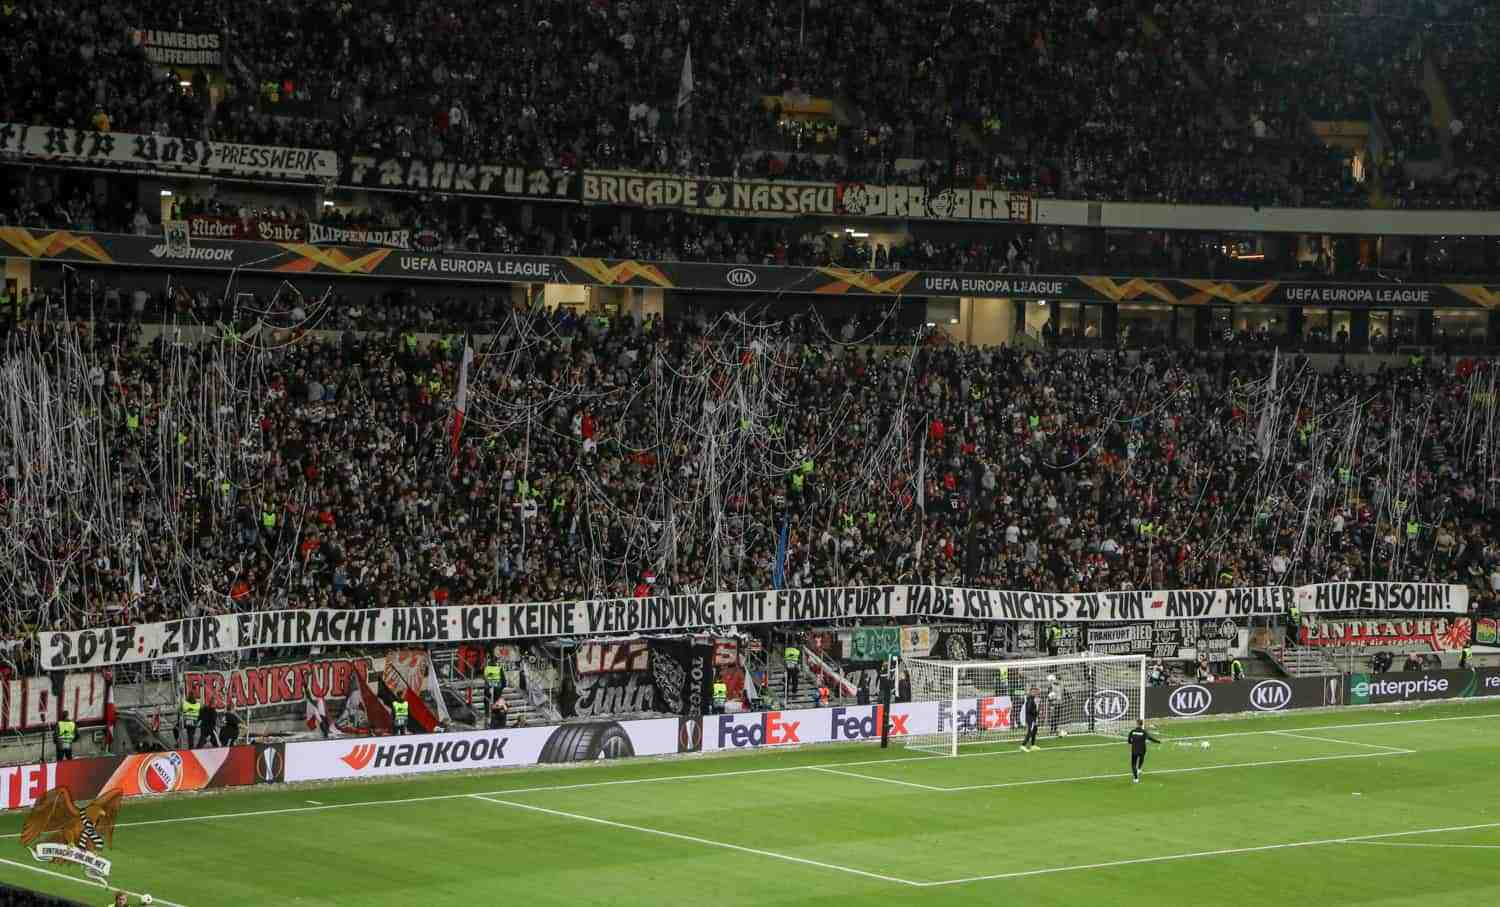 19-20-europaleague-eintracht-frankfurt-arsenal-london-24